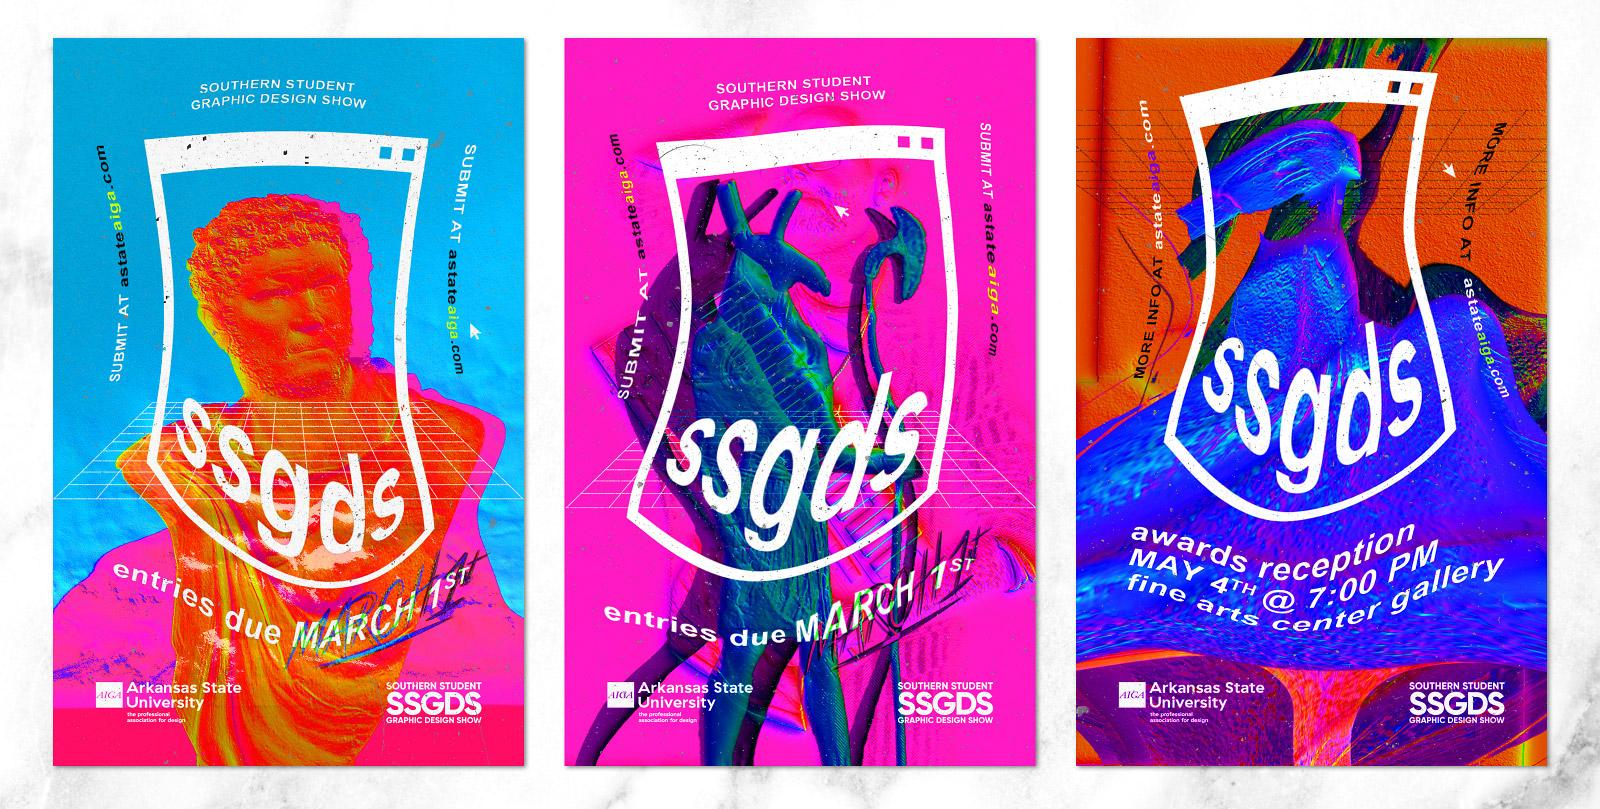 Maximalist design posters for the Southern Student Graphic Design Show